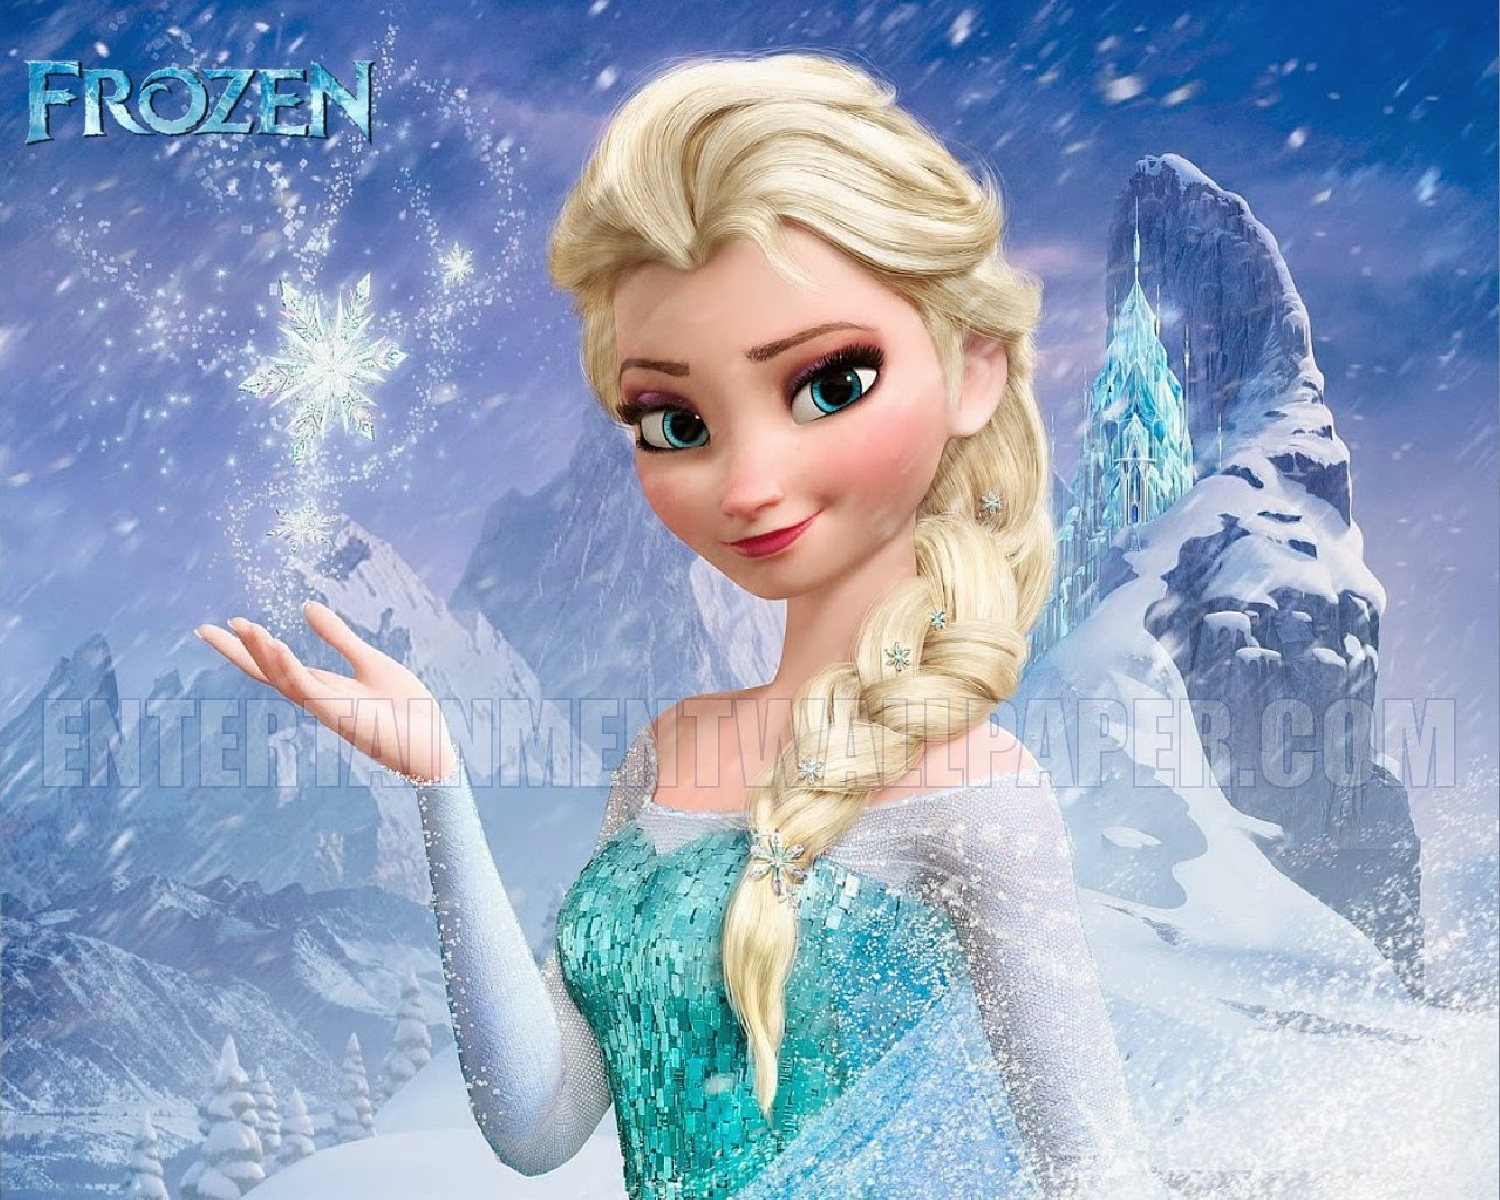 Queen Elsa Wallpaper  Frozen Wallpaper (37370228)  Fanpop